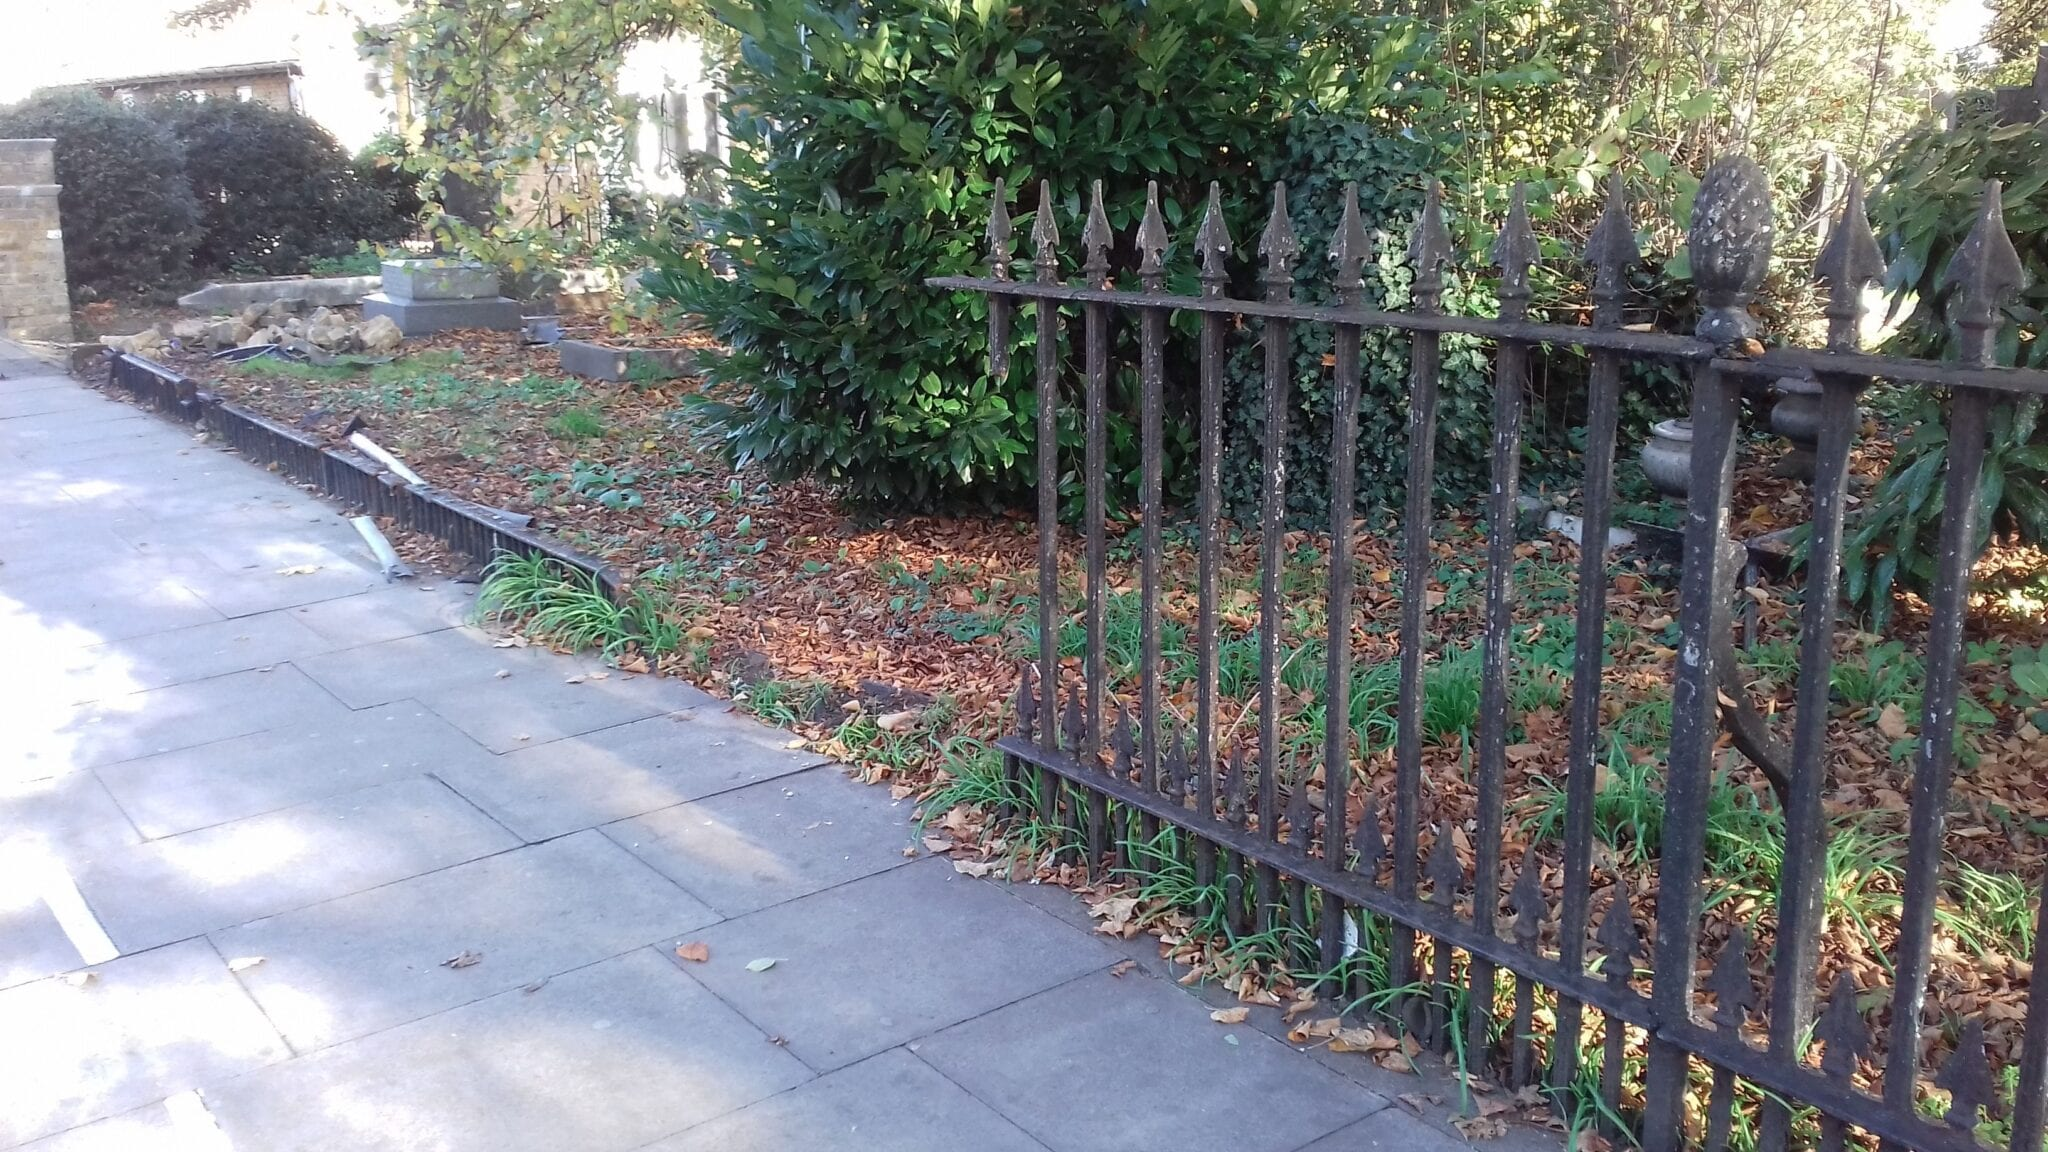 Second Major Railing Repair Project, Grade II Listed St. James' Church, Enfield 7